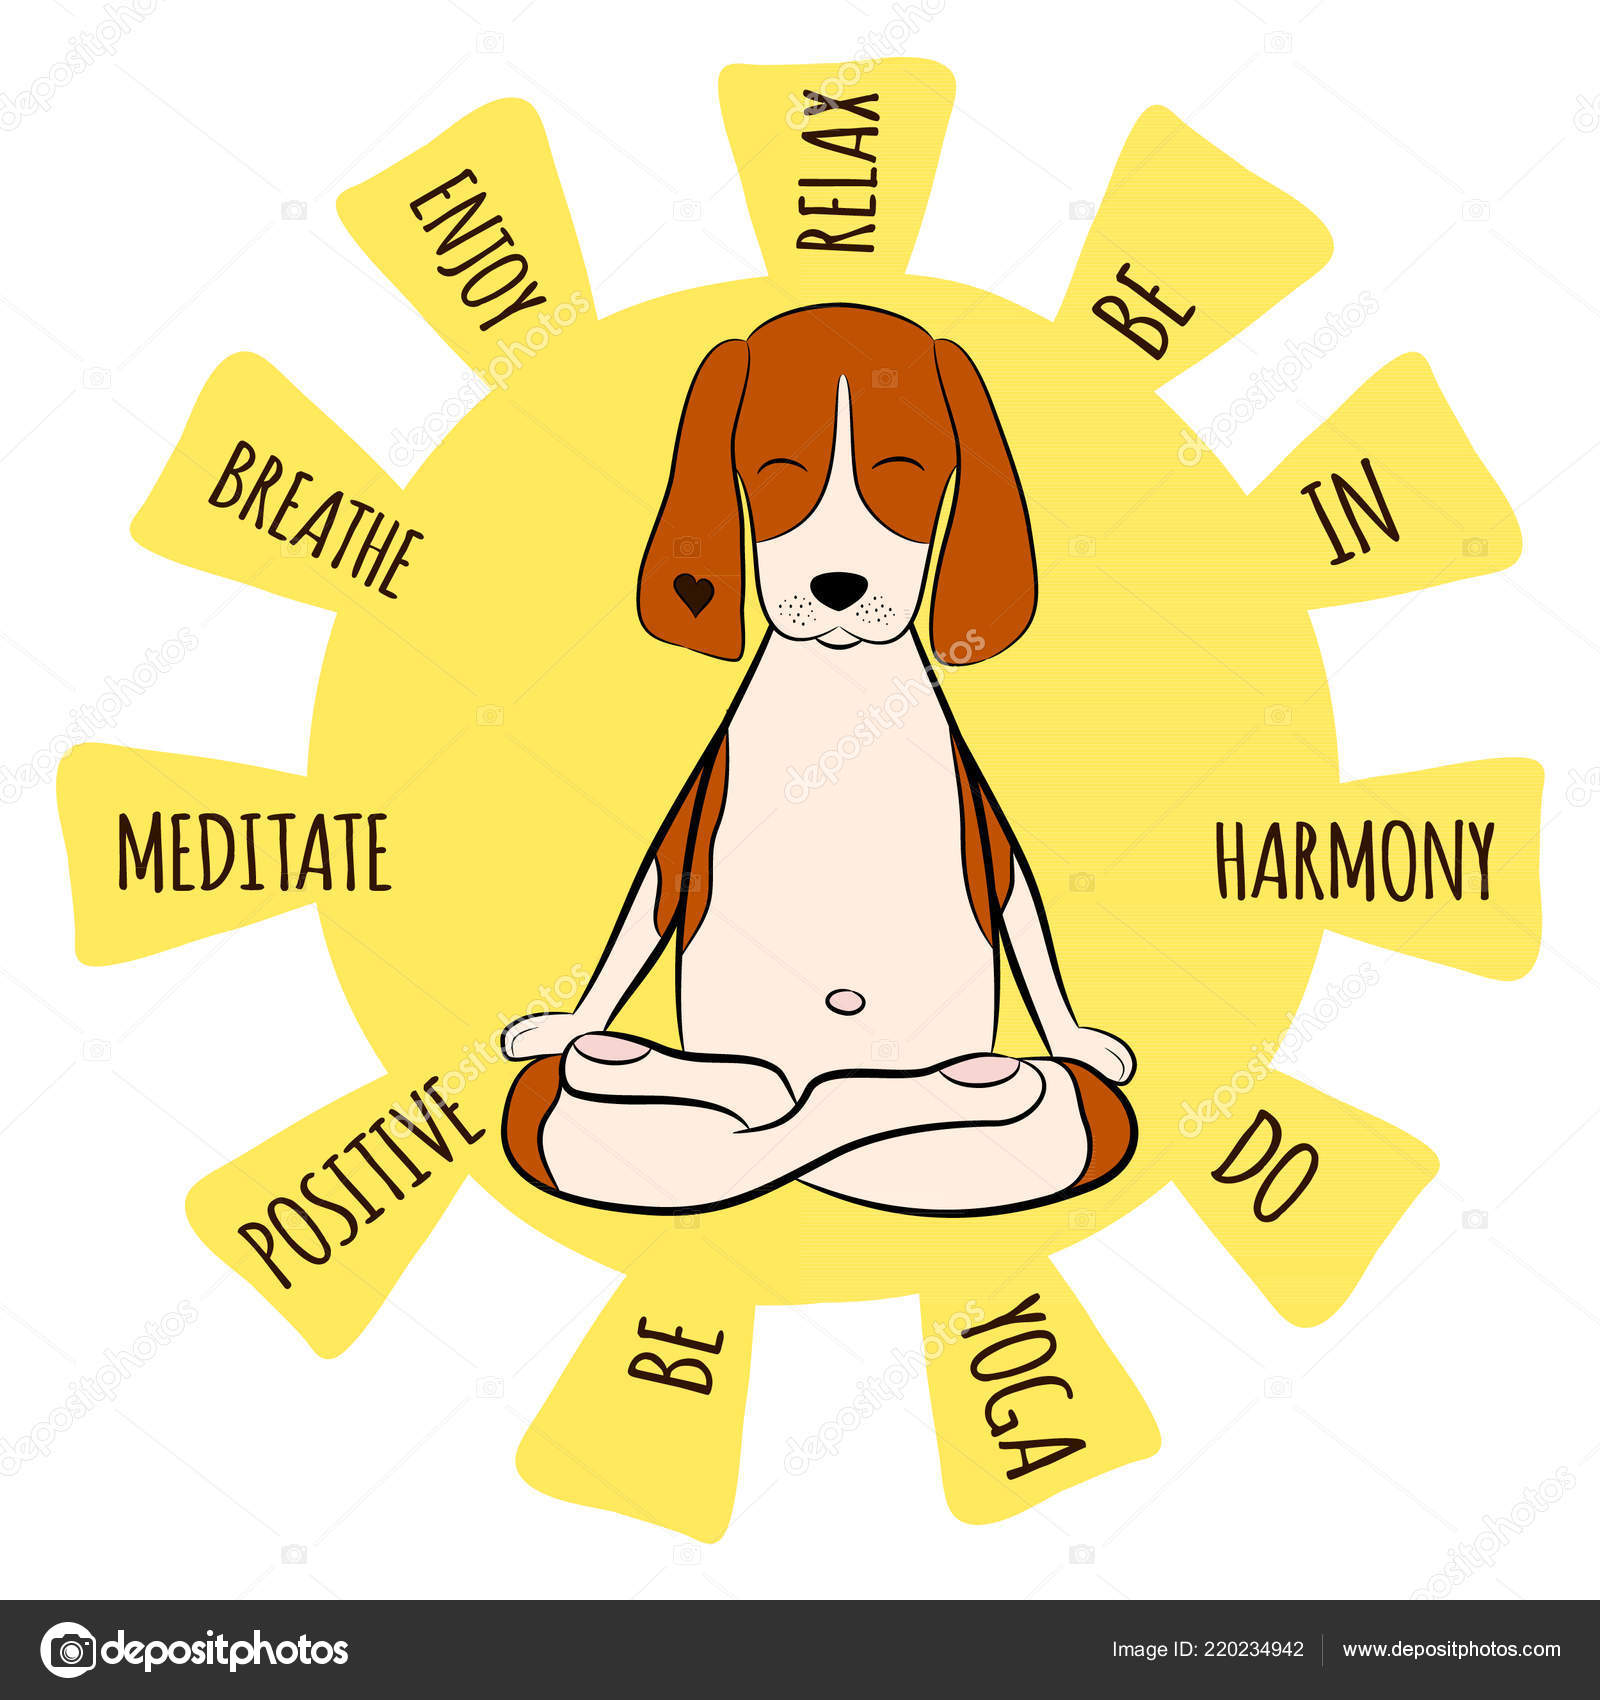 Images Dog Yoga Cartoon Image Cartoon Funny Dog Beagle Sitting Lotus Position Yoga Beagle Stock Vector C Yanabolbot Gmail Com 220234942